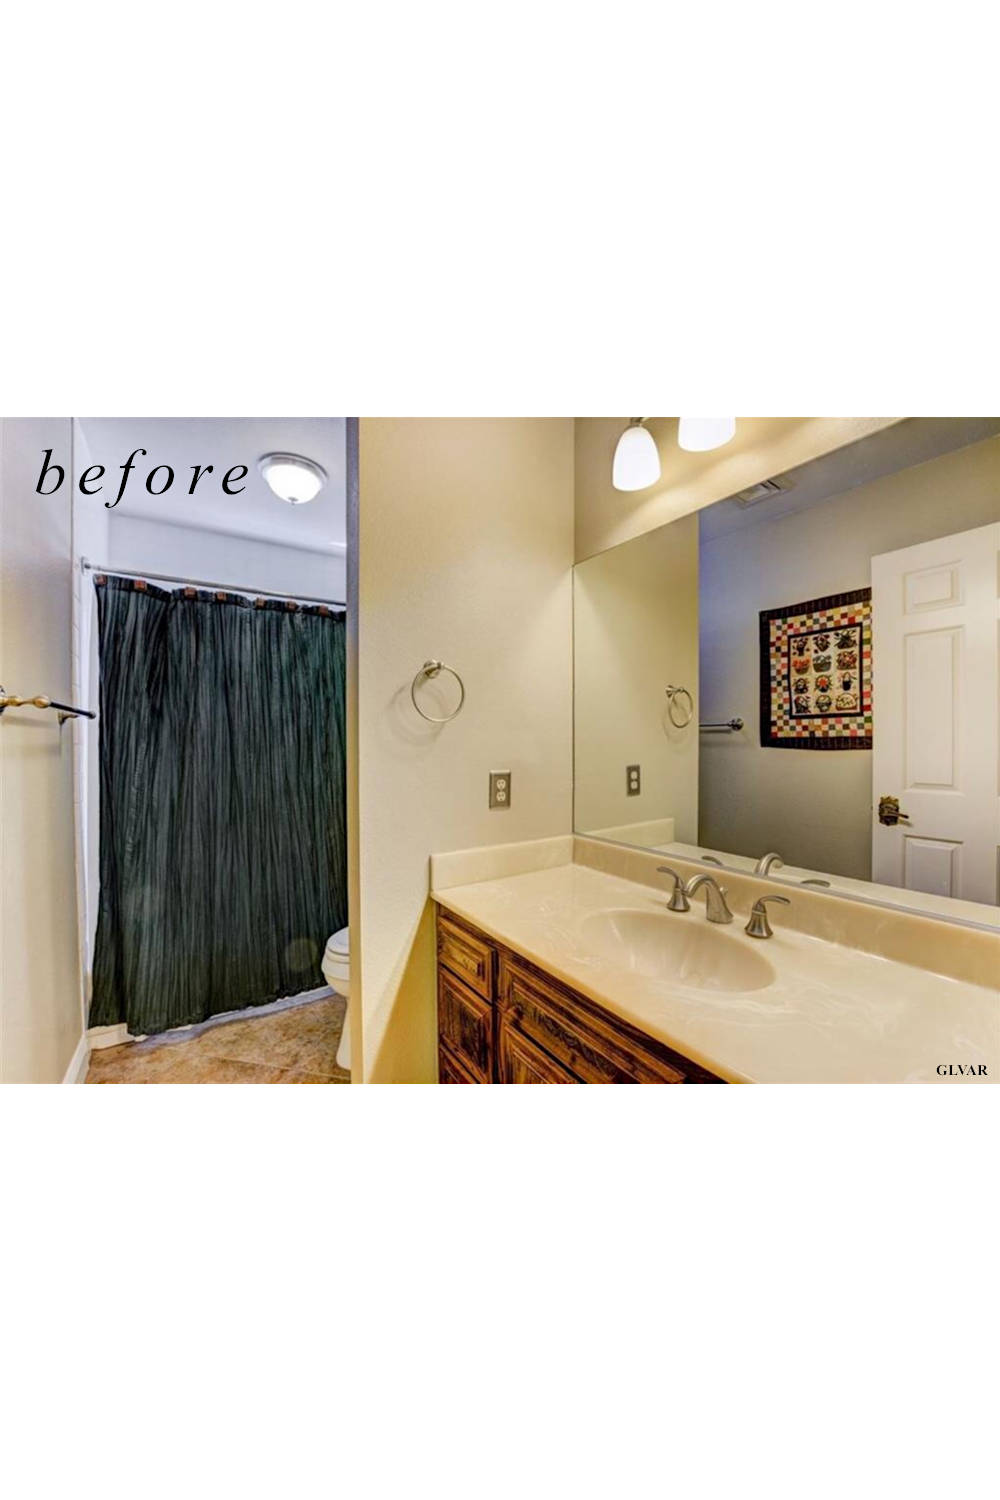 Before remodel image: old and dated bathroom and shower.